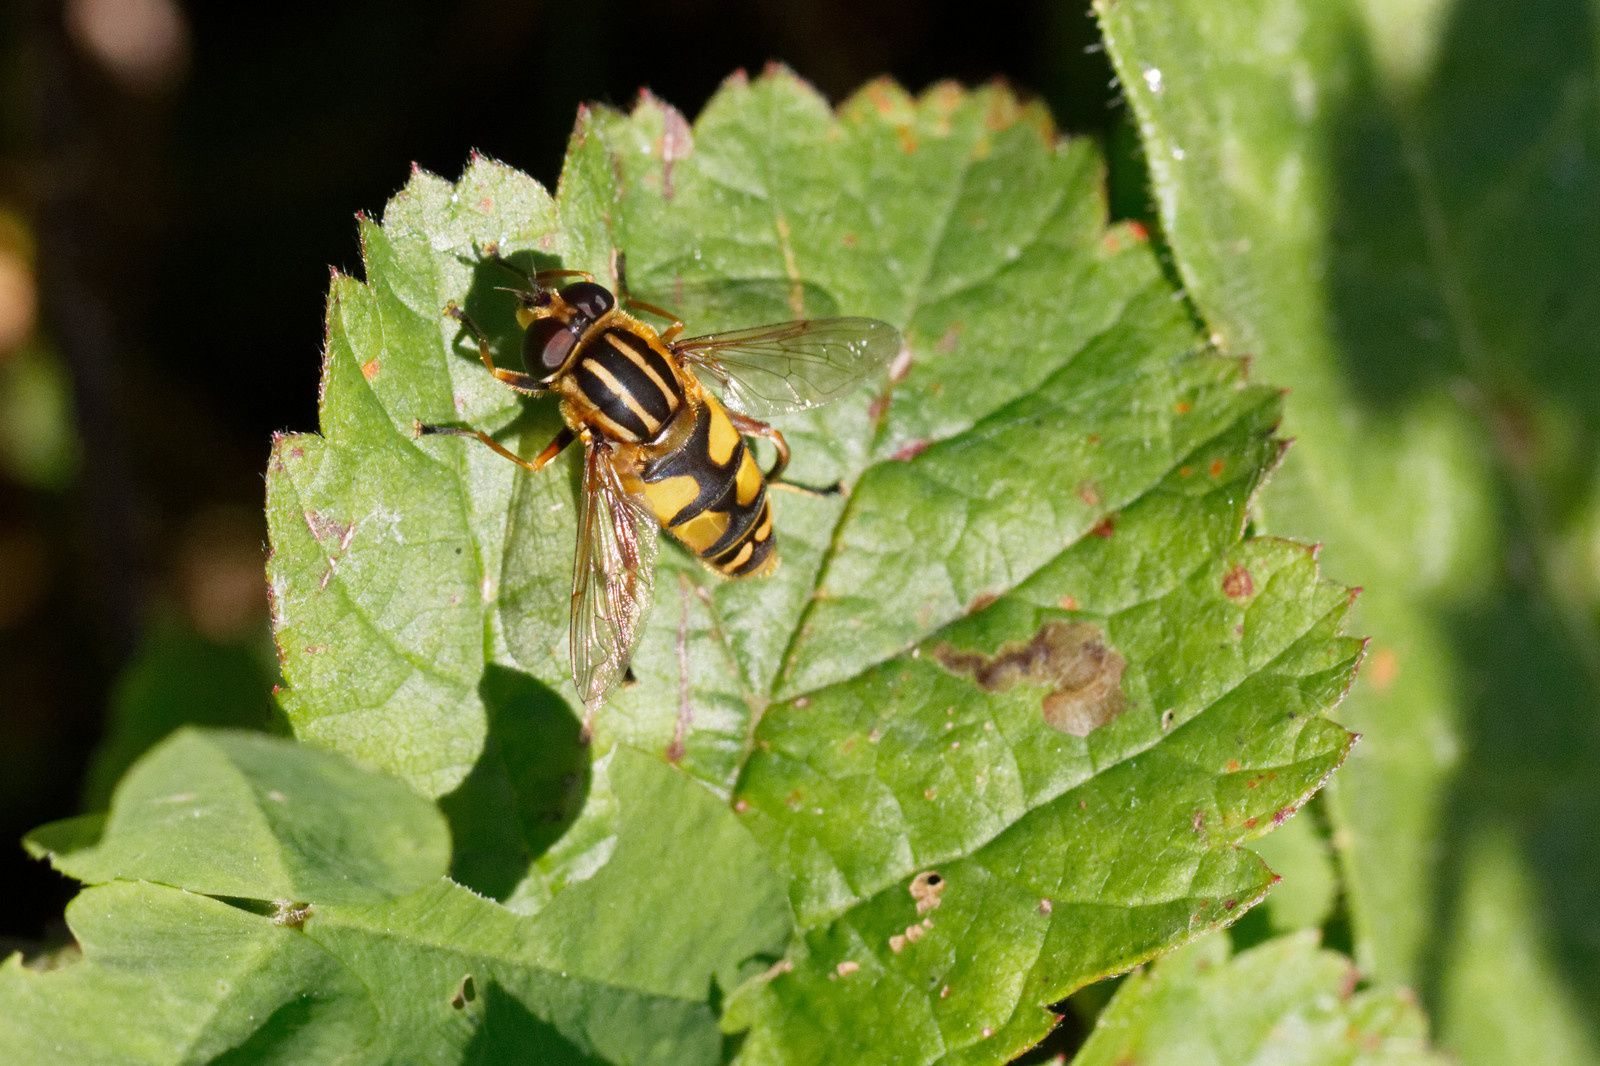 Syrphe ; Helophilus trivattatus, possible